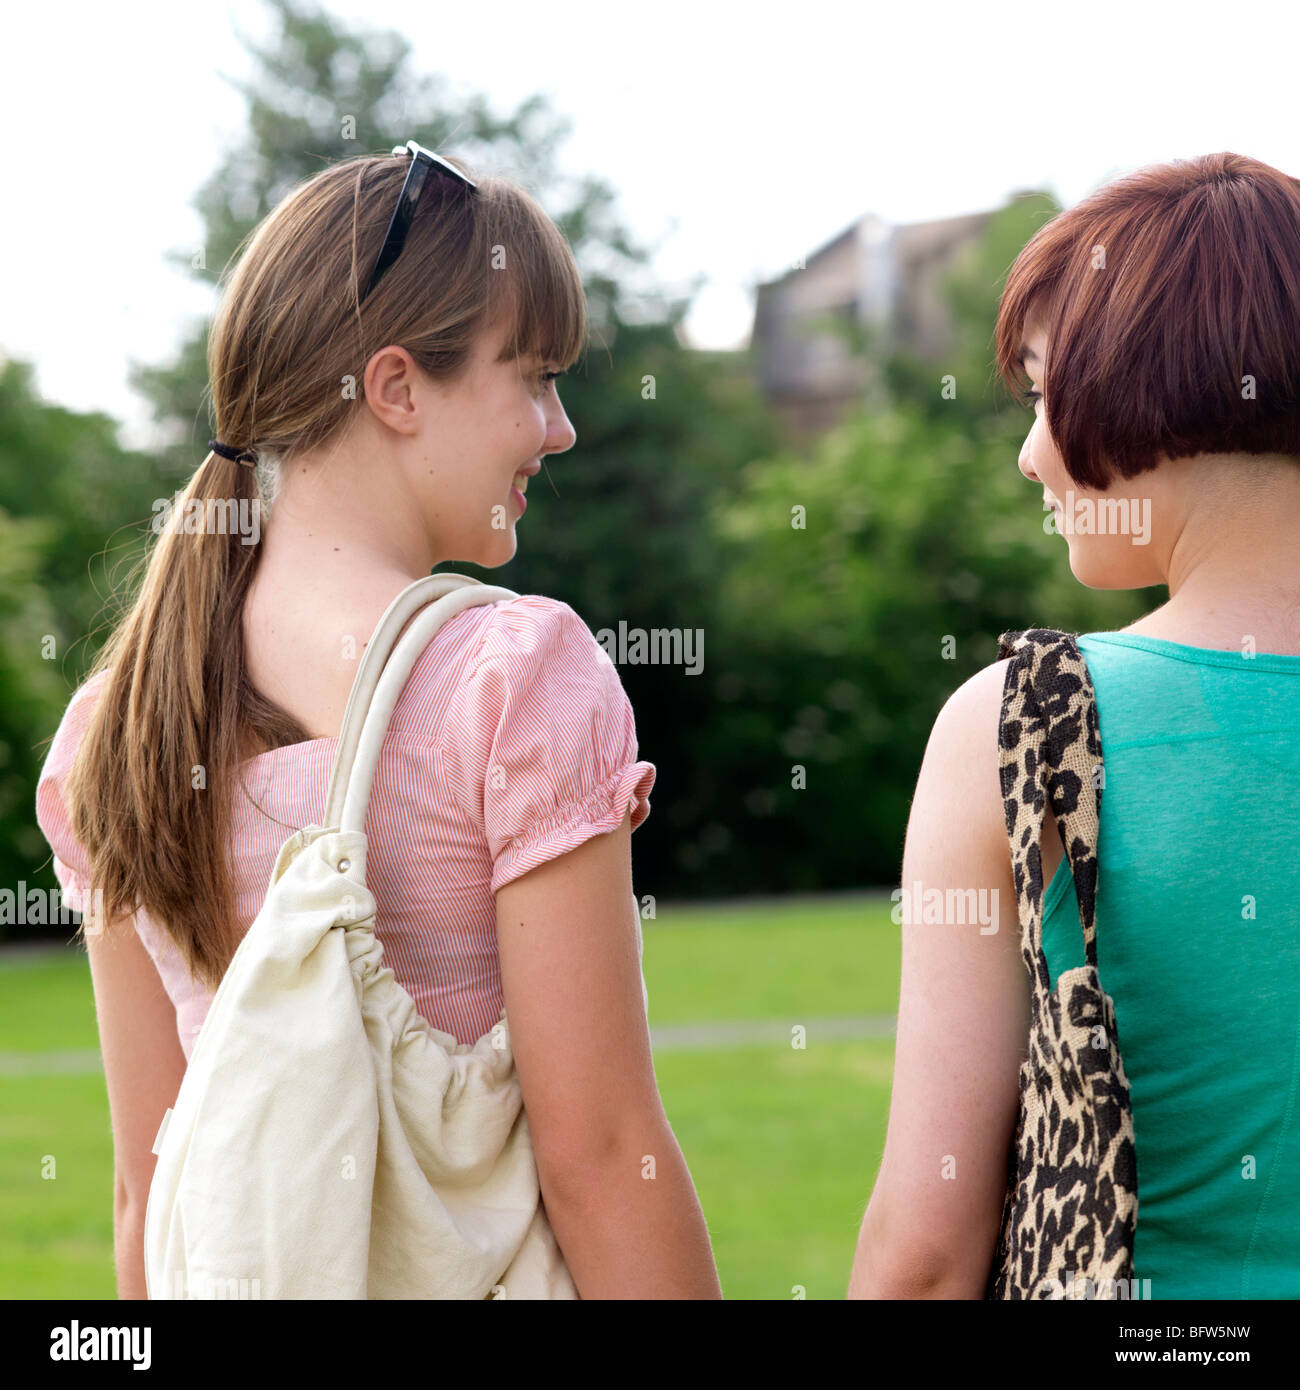 2 young women with bags - Stock Image